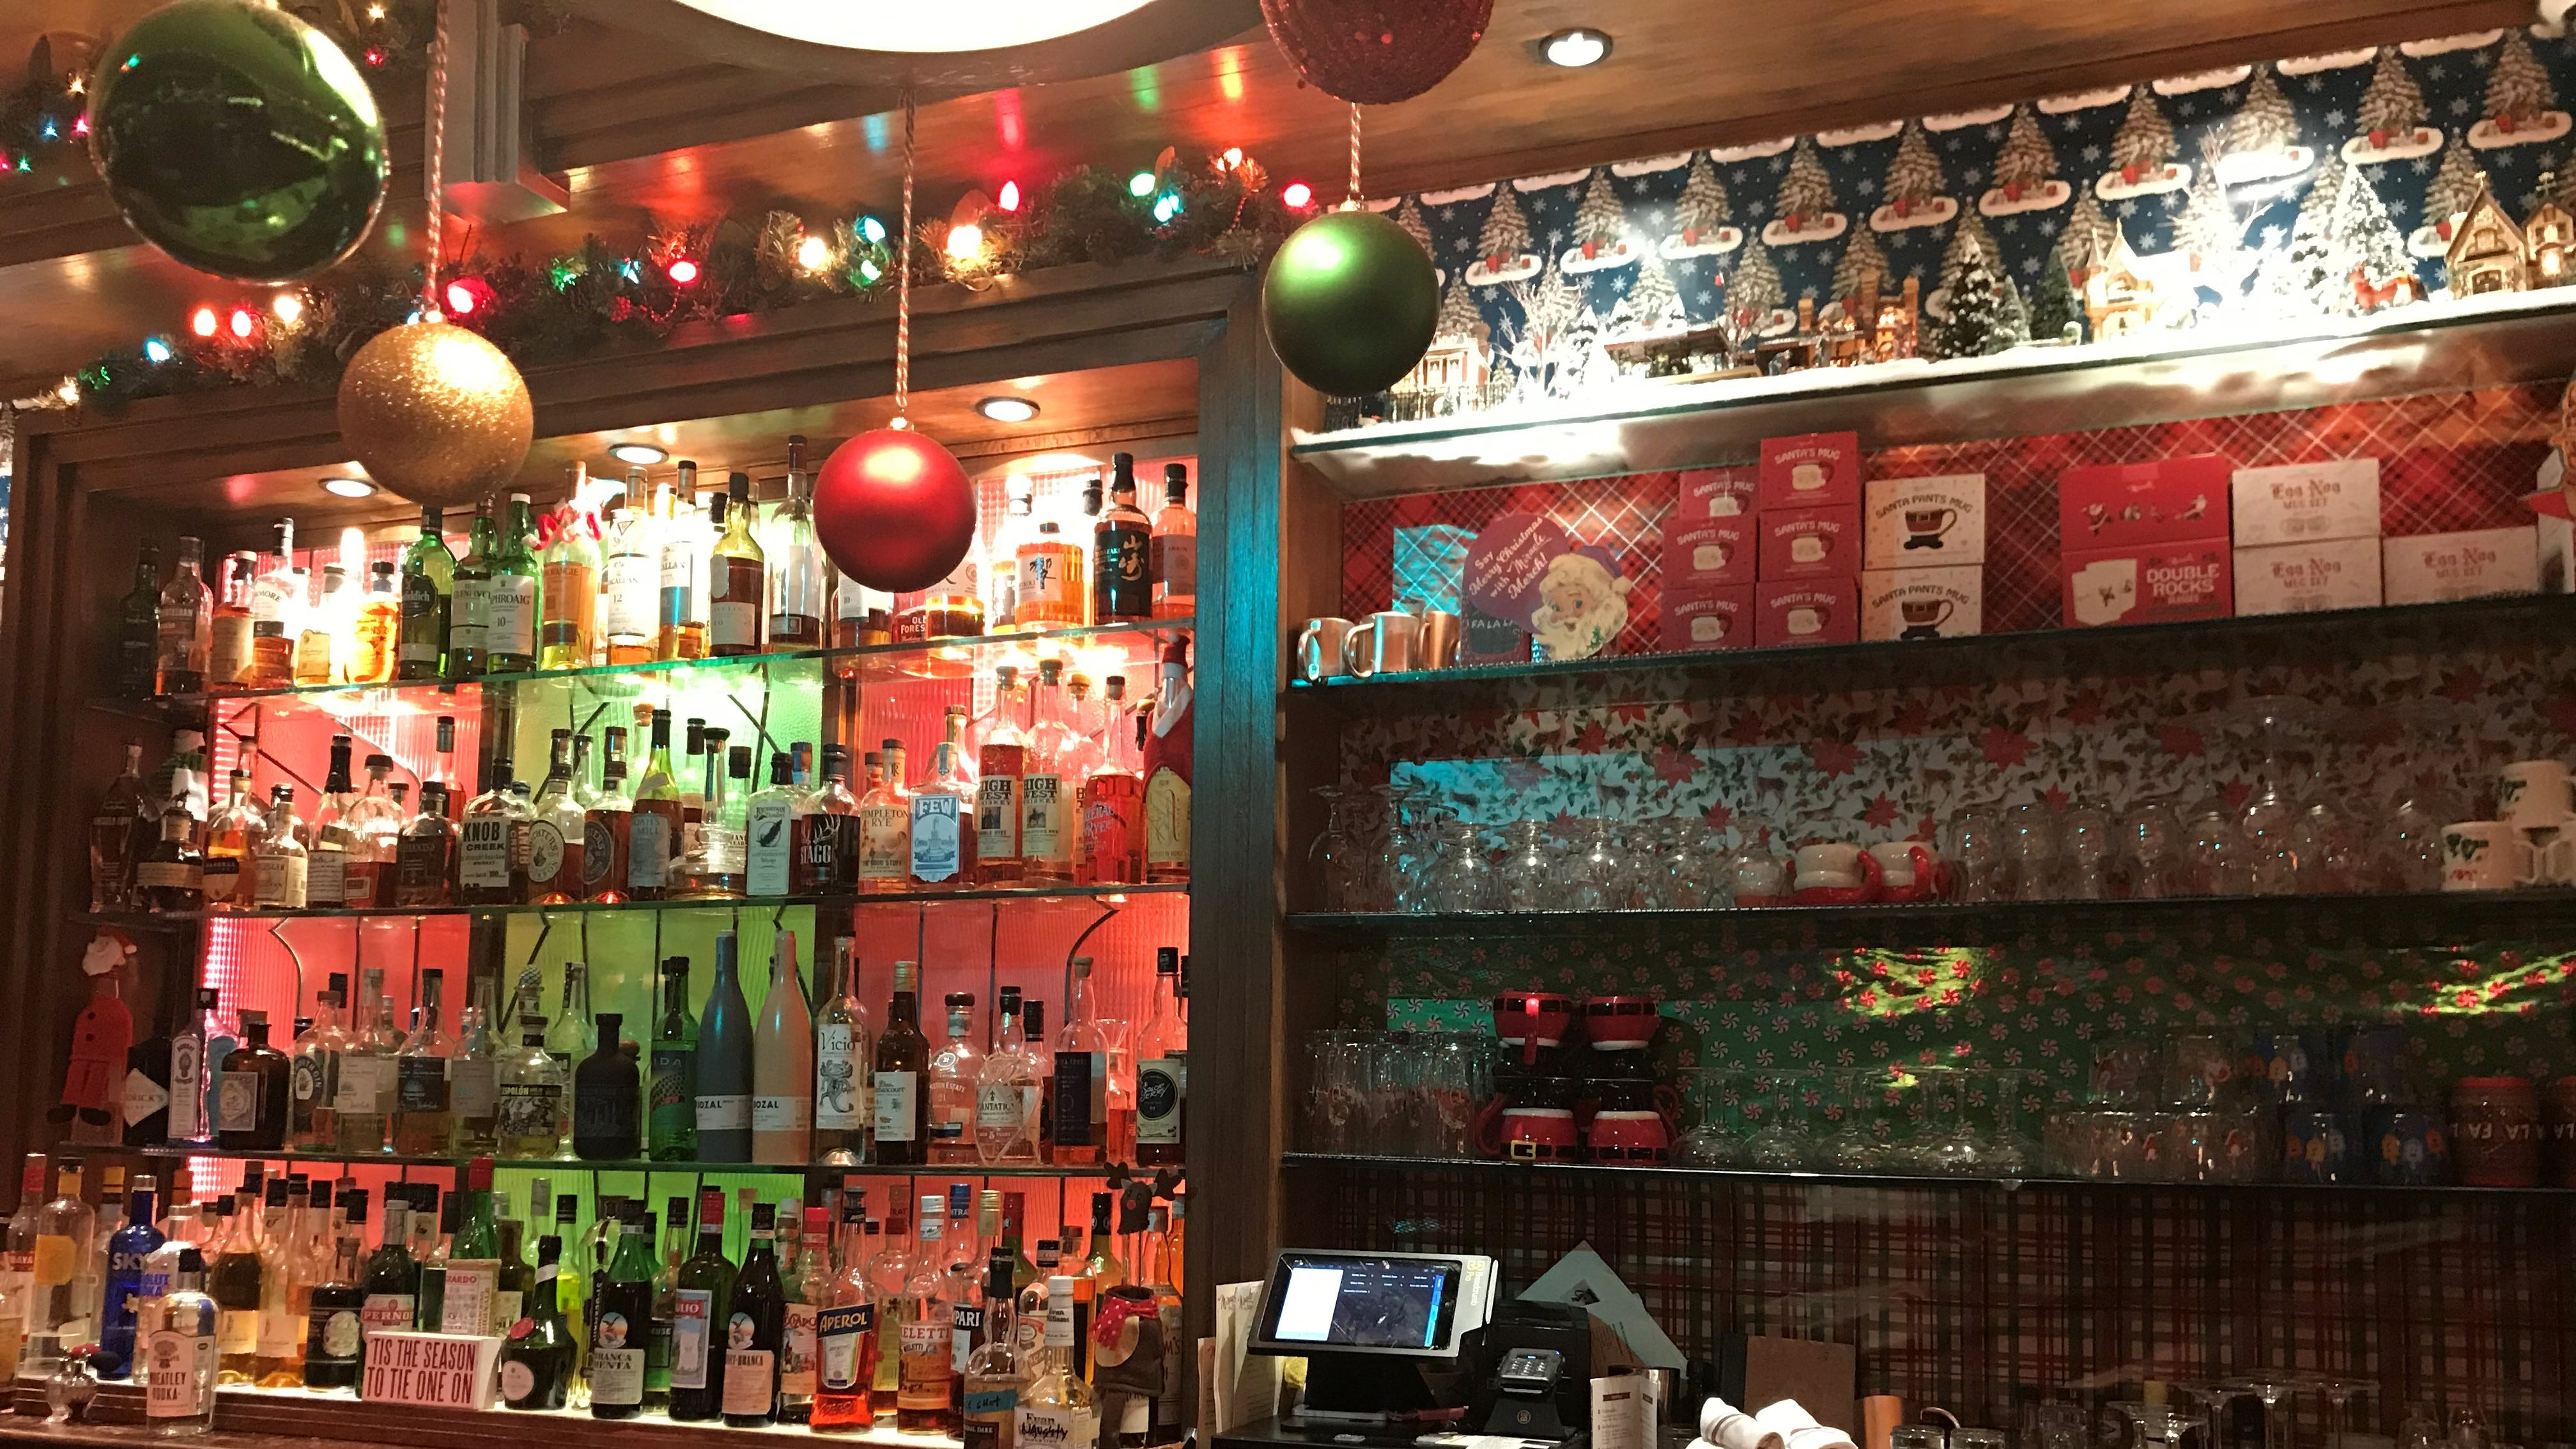 Cowan's Public in Nutley has transformed into a Christmas pop-up bar for the month of December.